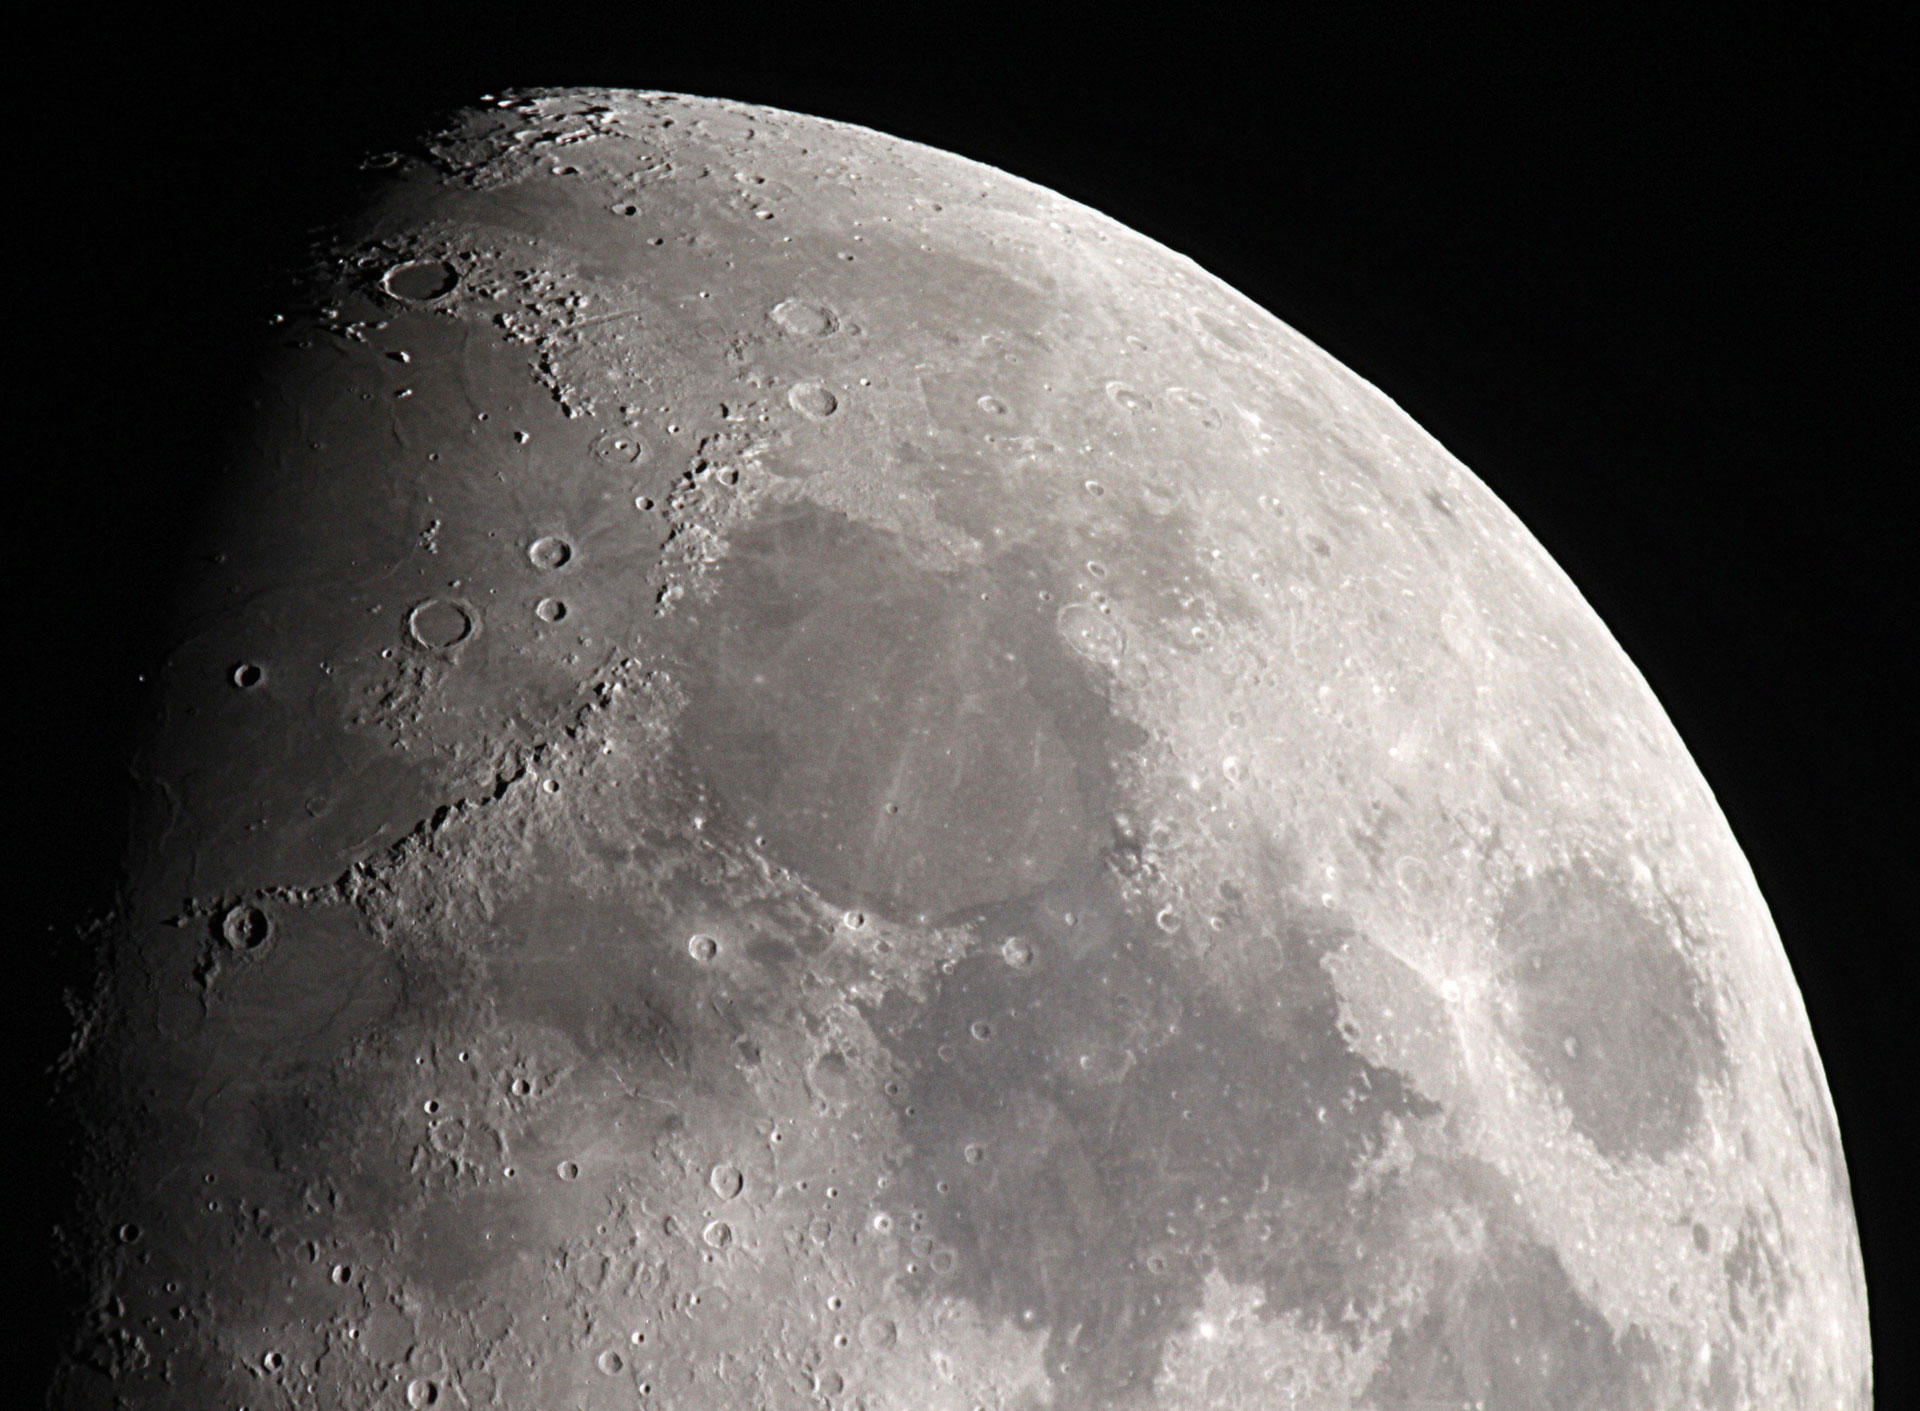 NASA confirms presence of water on the Moon's surface